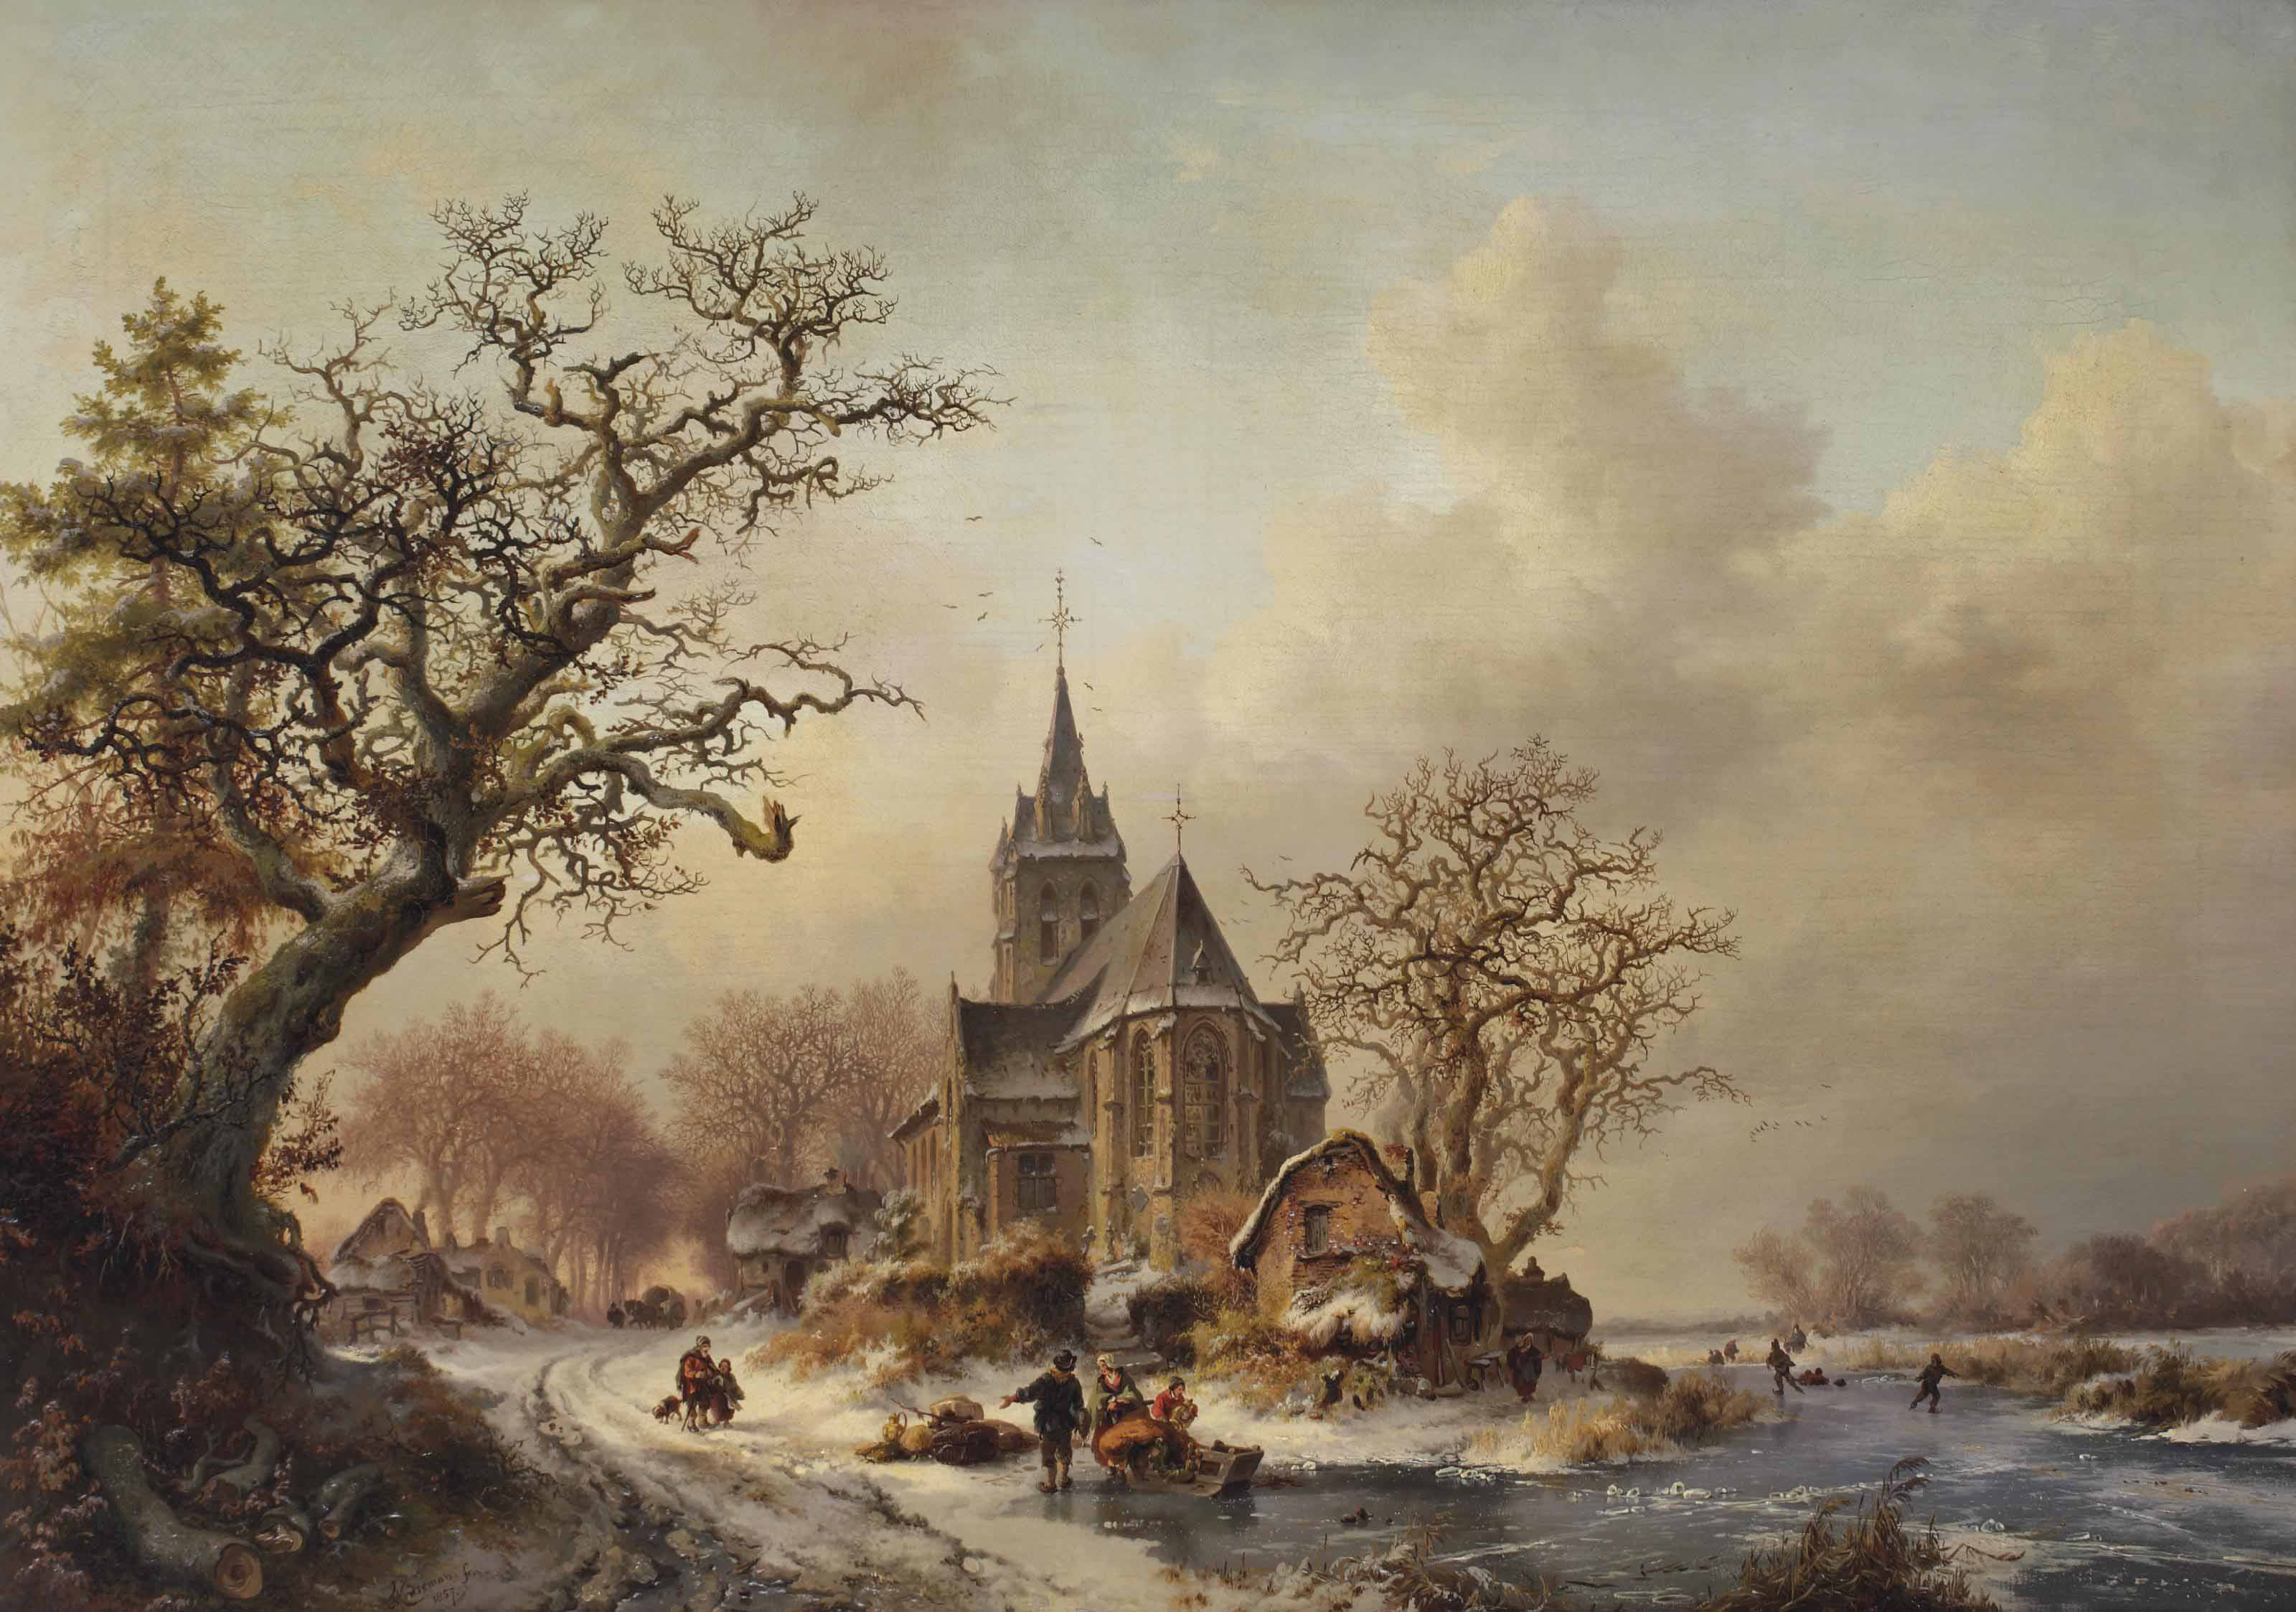 A winter landscape with activities around a village